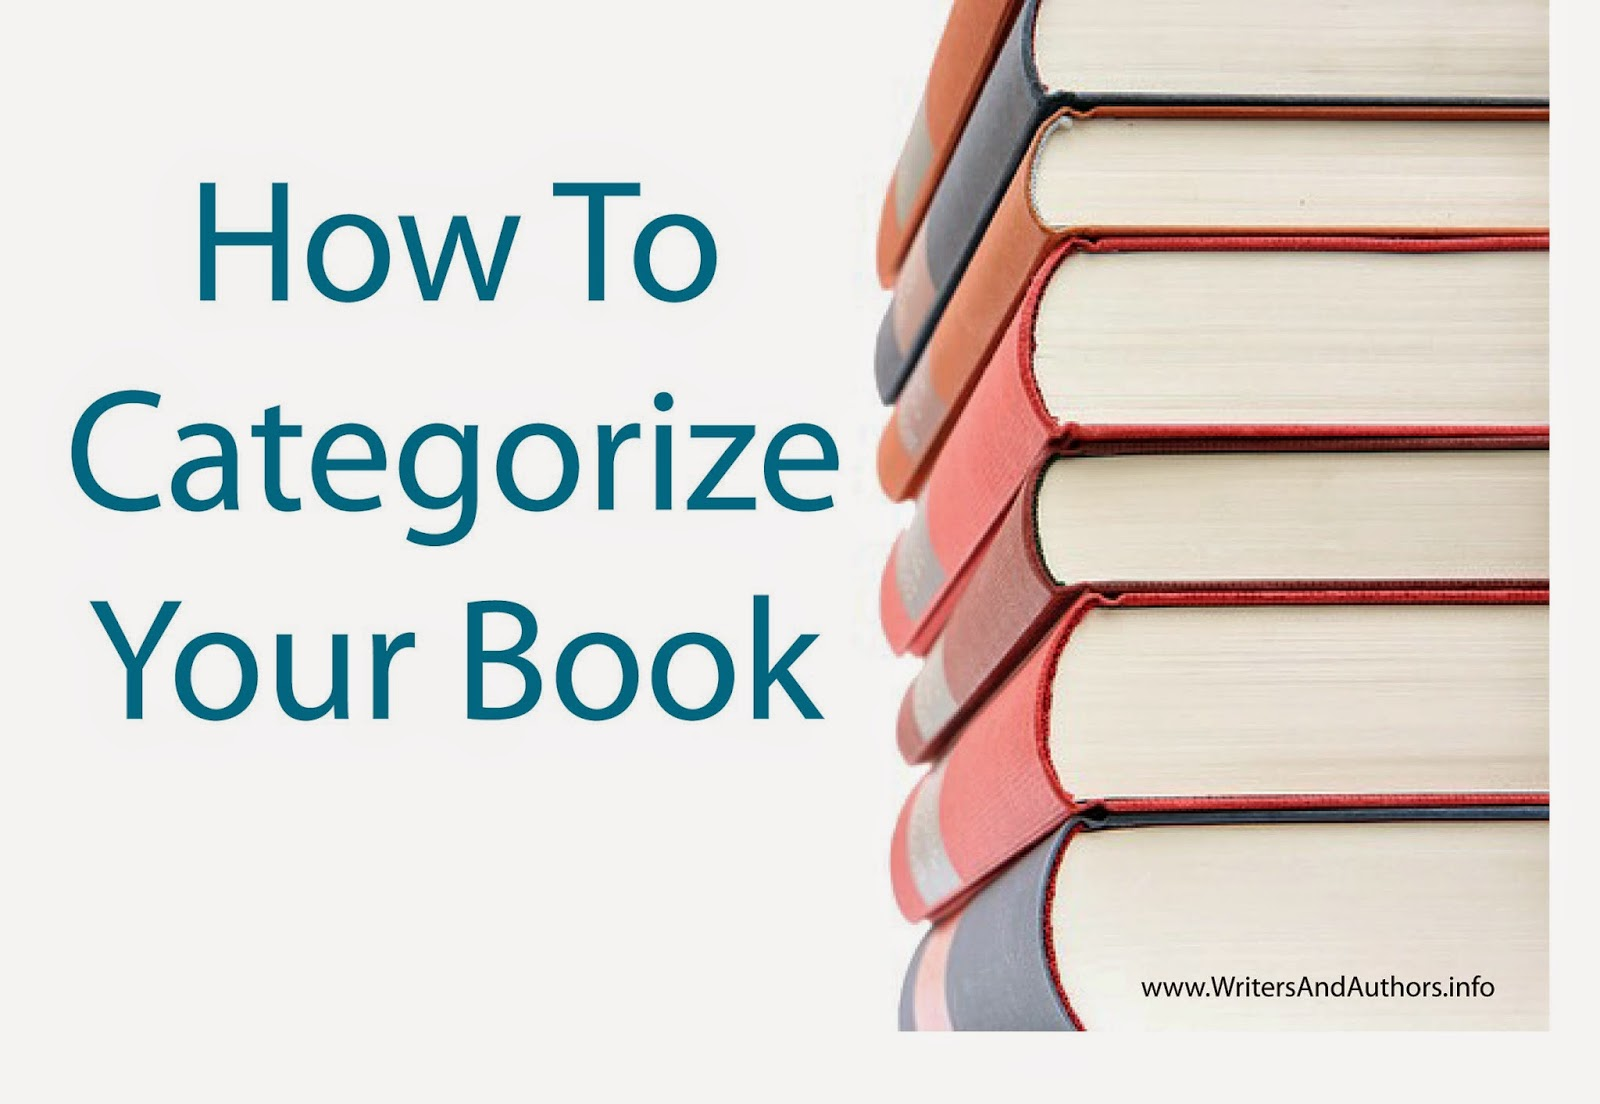 How To Categorize Your Book, www.writersandauthors.info